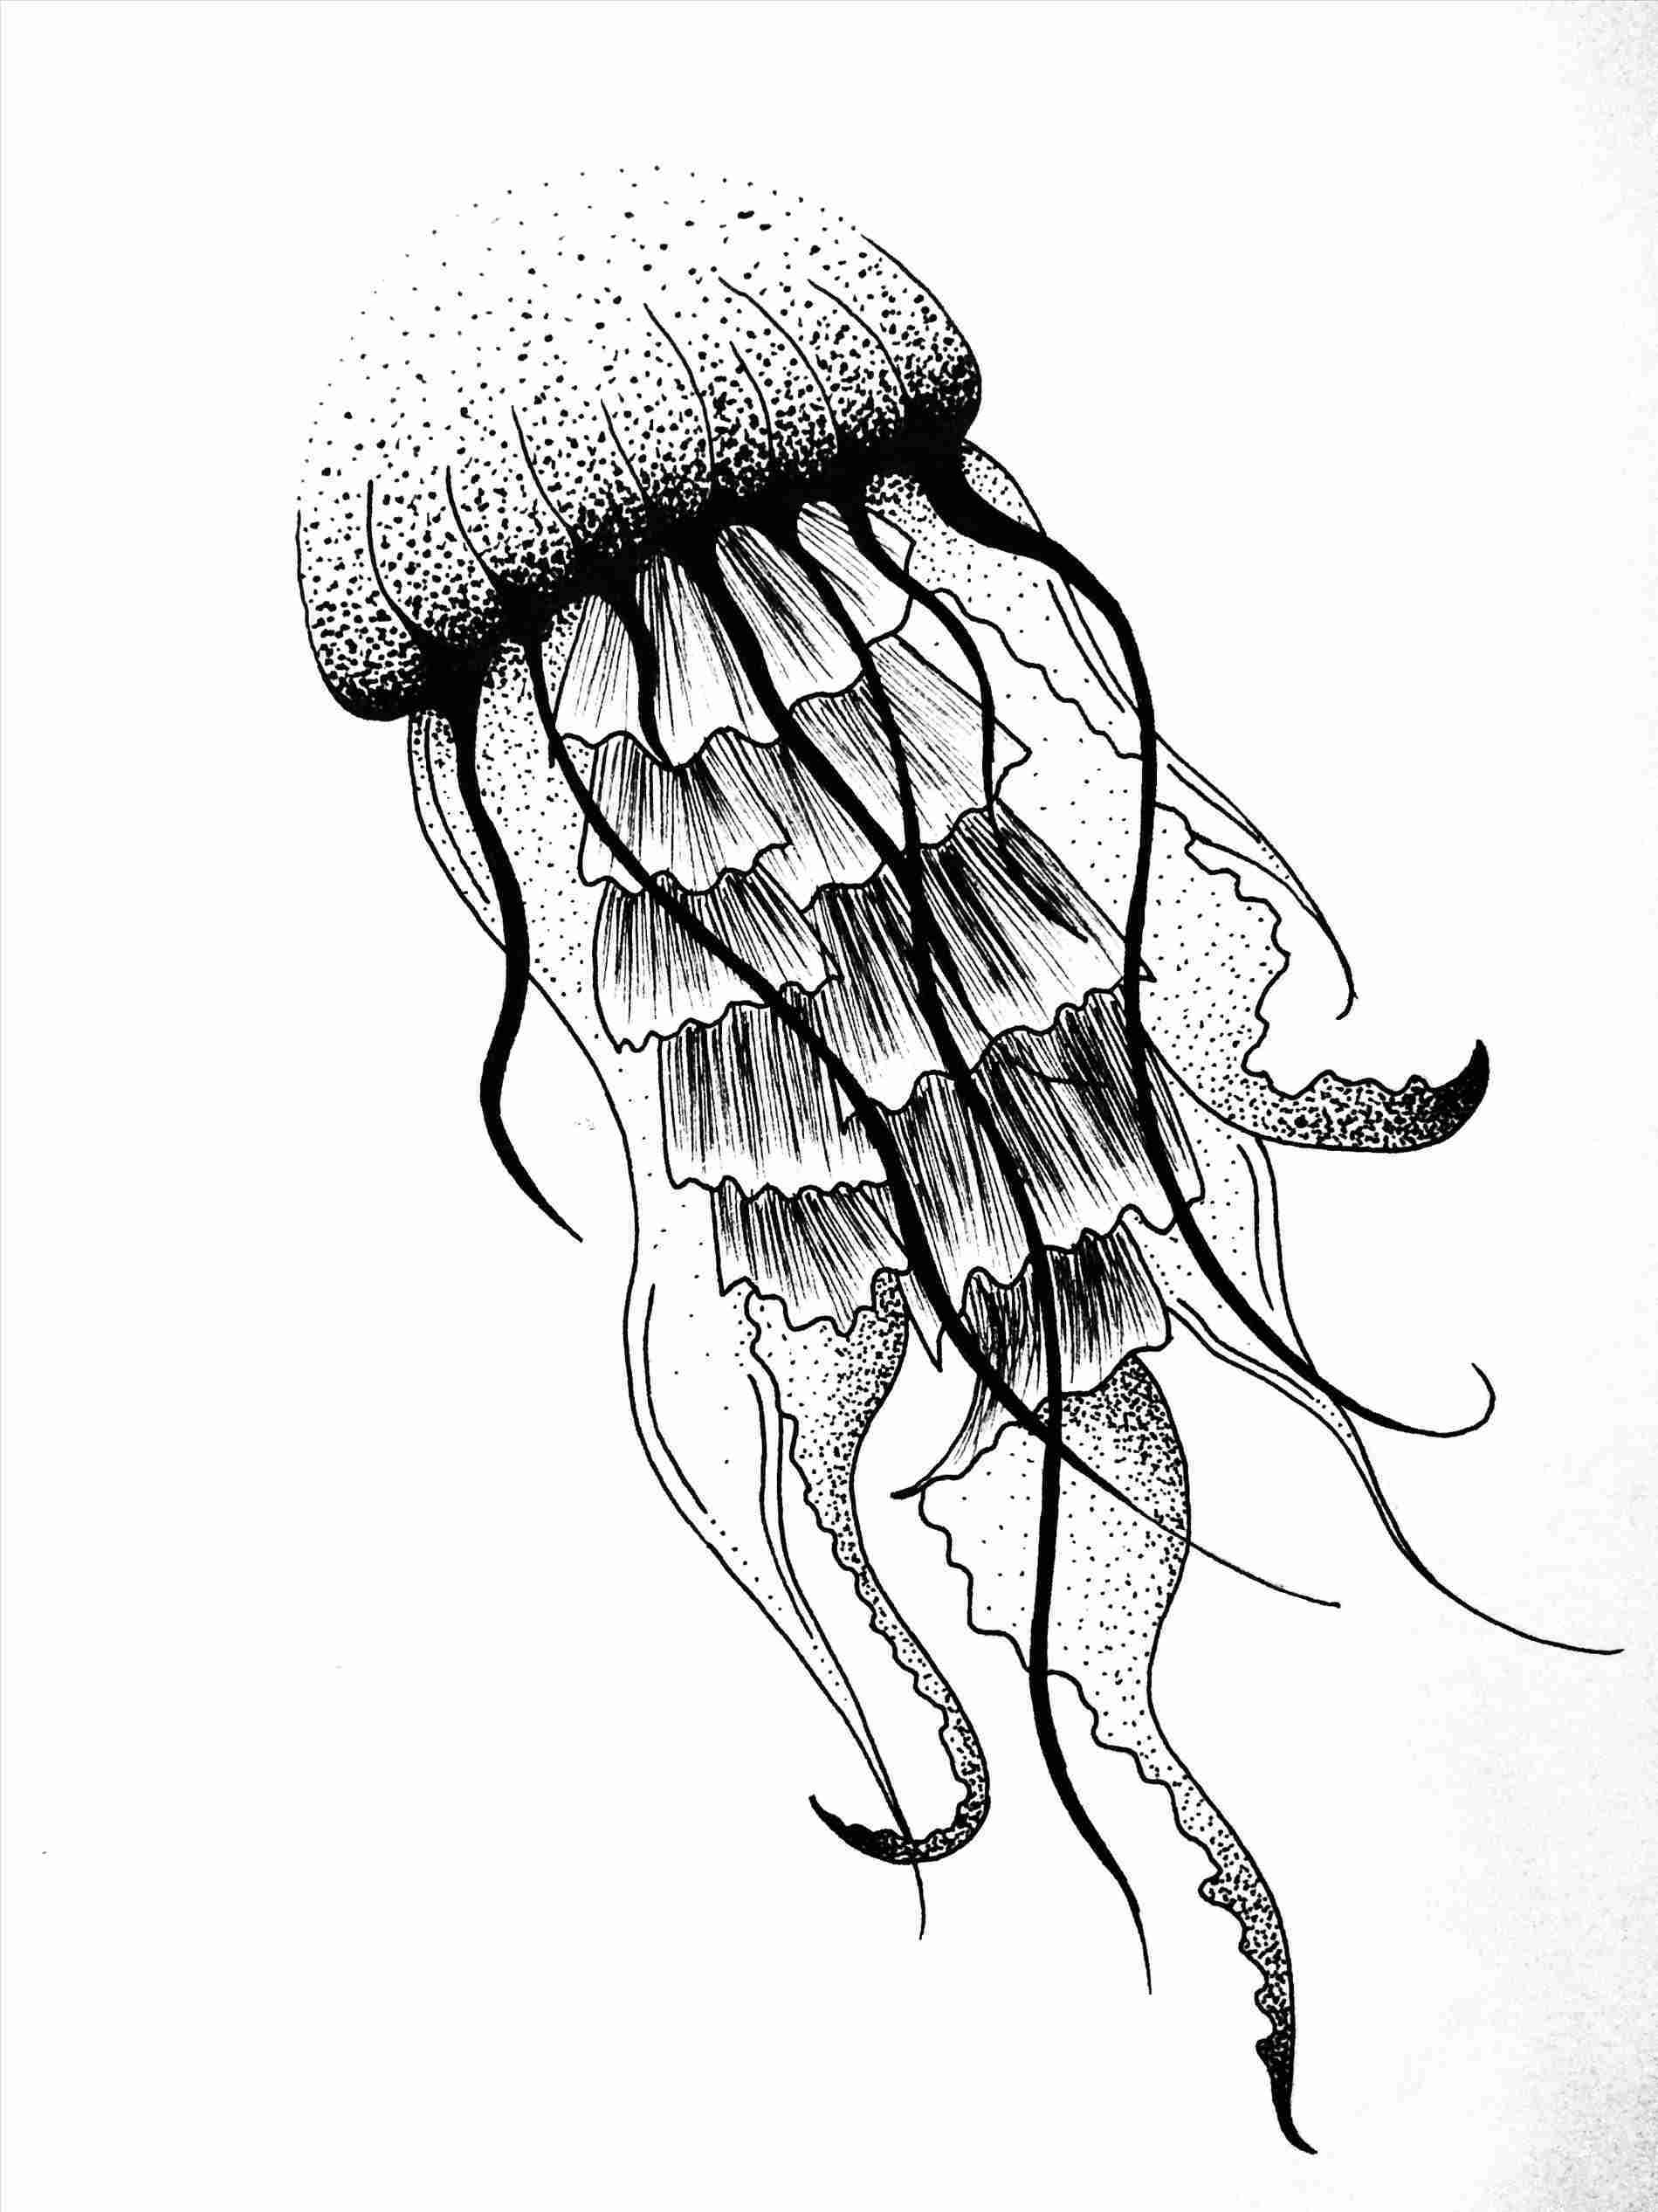 Jelly fish sketch